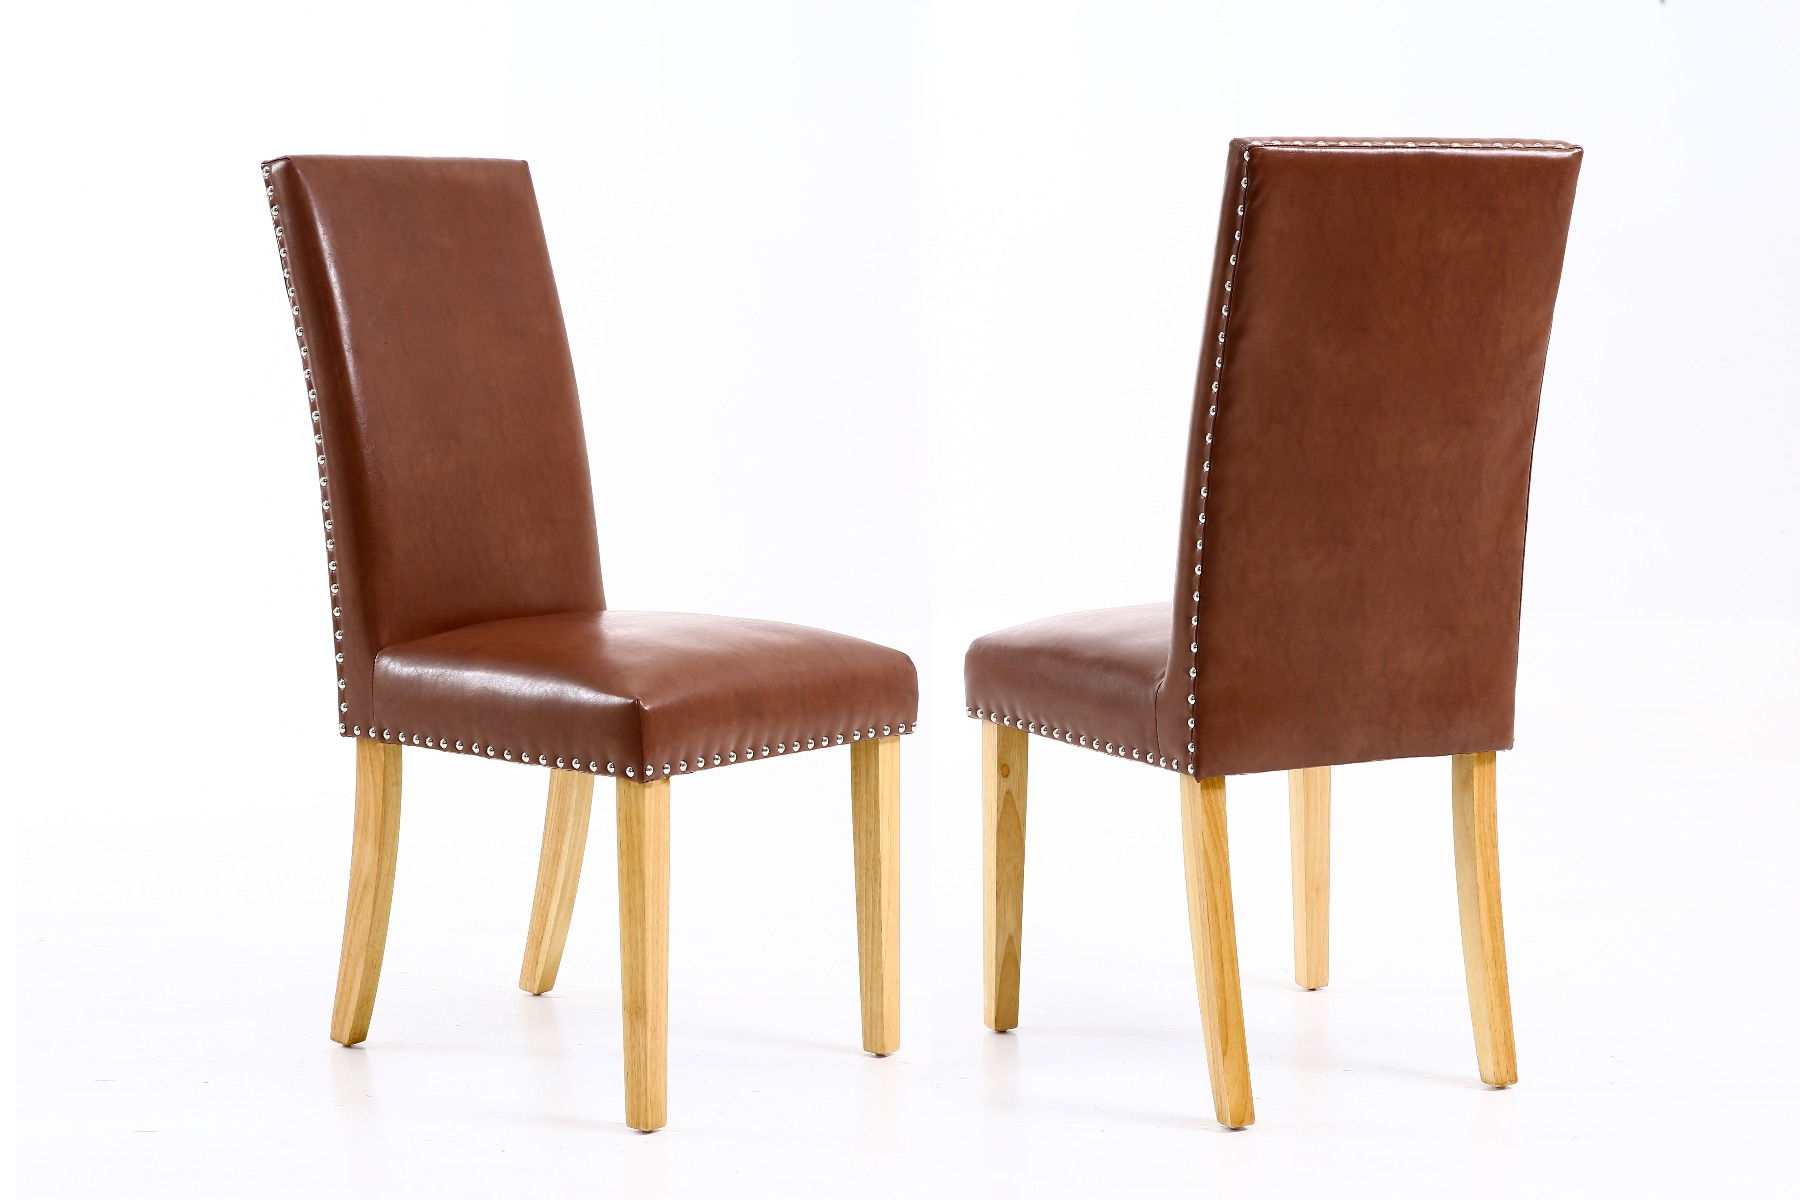 Studded Dining Chairs Mayfair Tan Brown Leather Studded Dining Chair Spring Sale